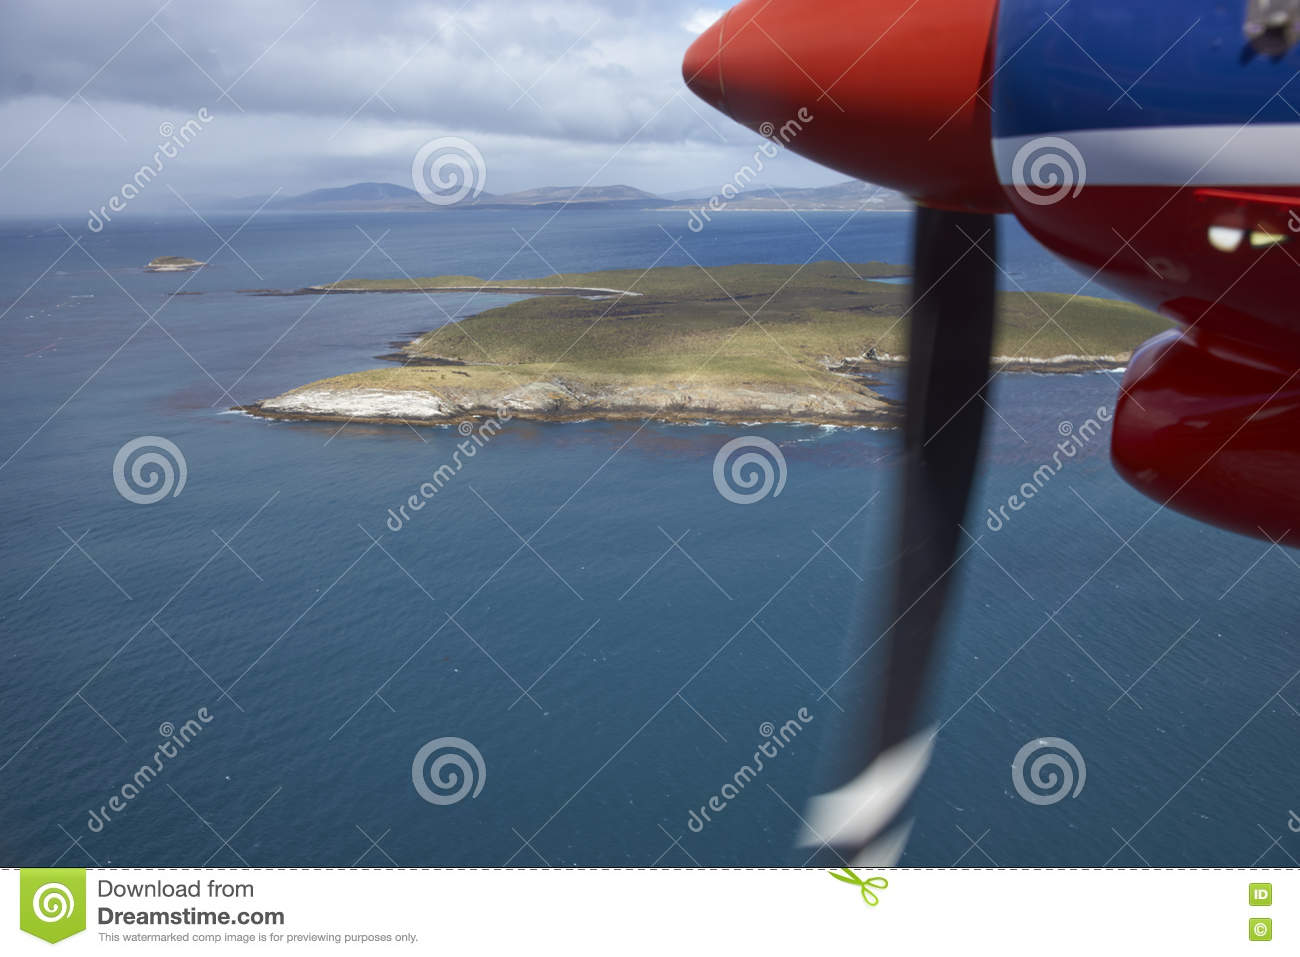 Flying over the Falkland Islands